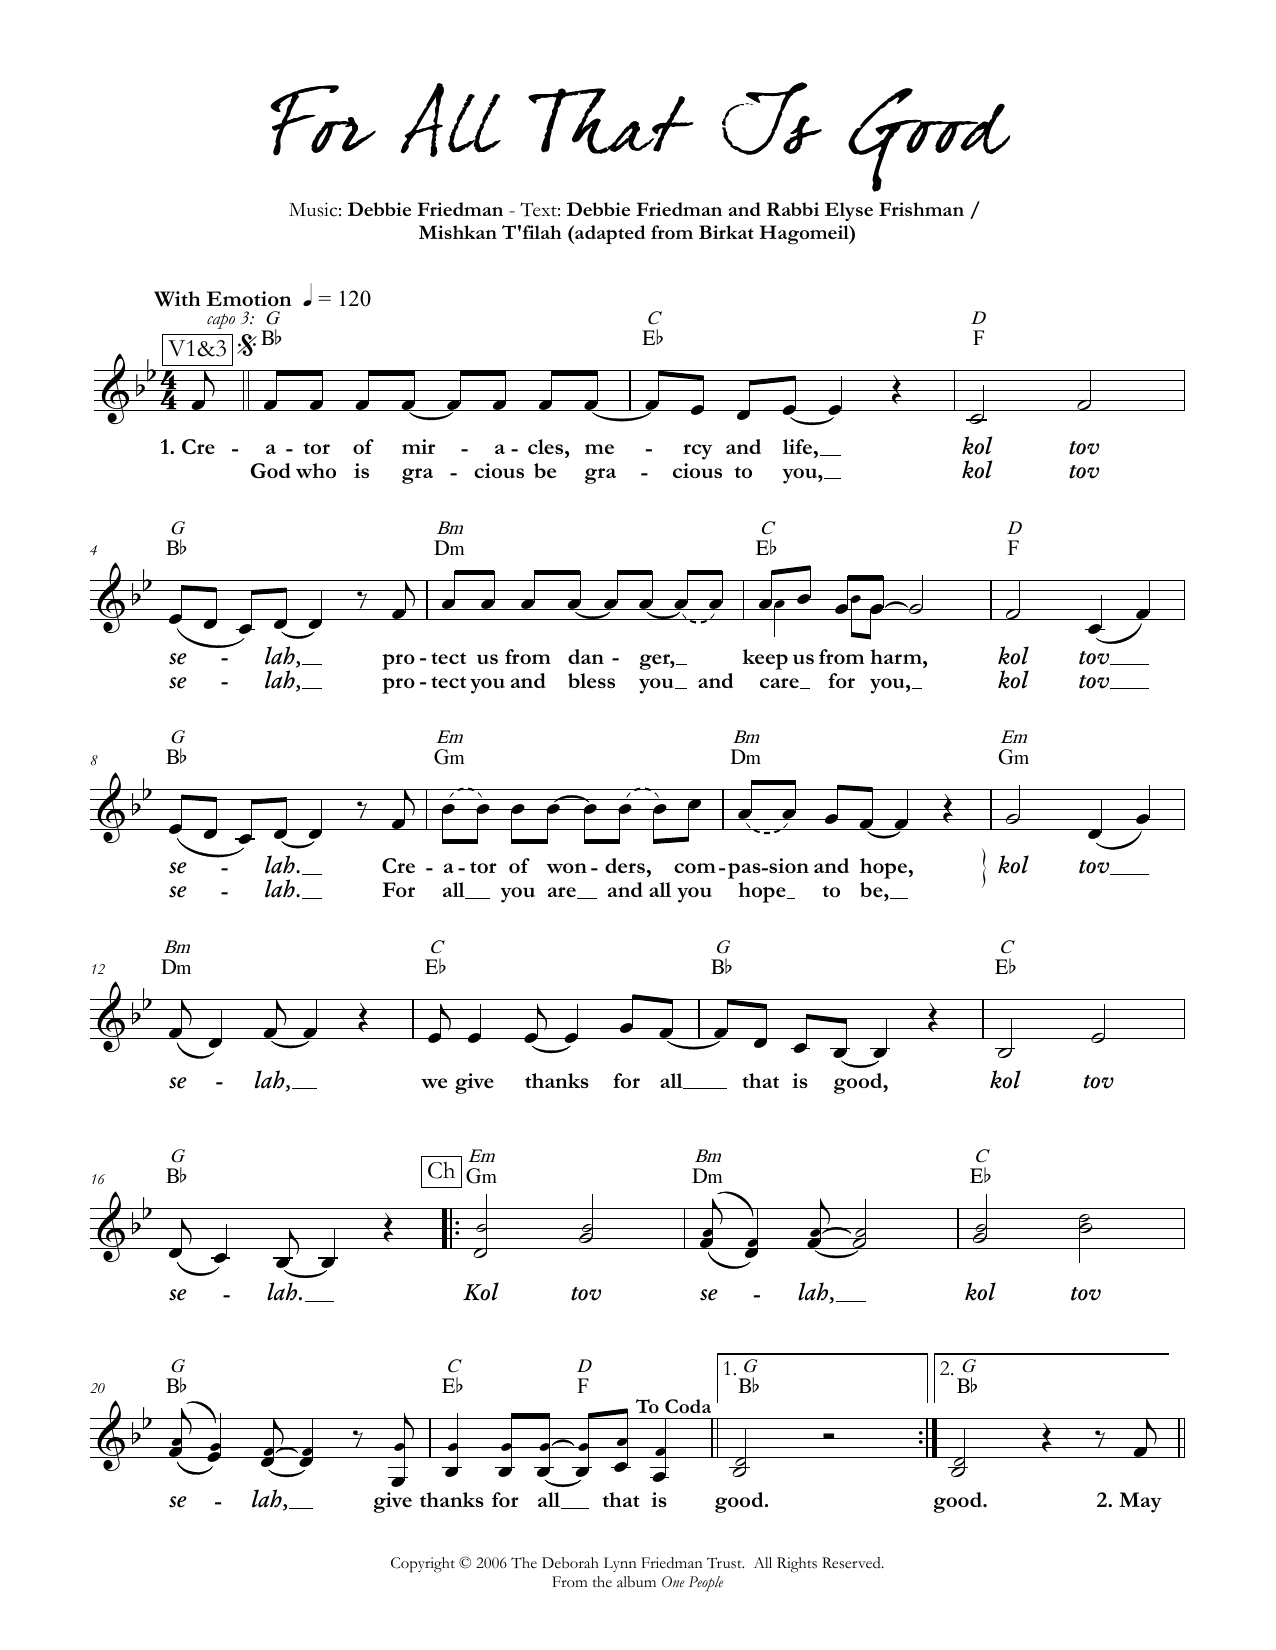 Debbie Friedman & Rabbi Elyse Frishman For All That Is Good sheet music preview music notes and score for Lead Sheet / Fake Book including 3 page(s)